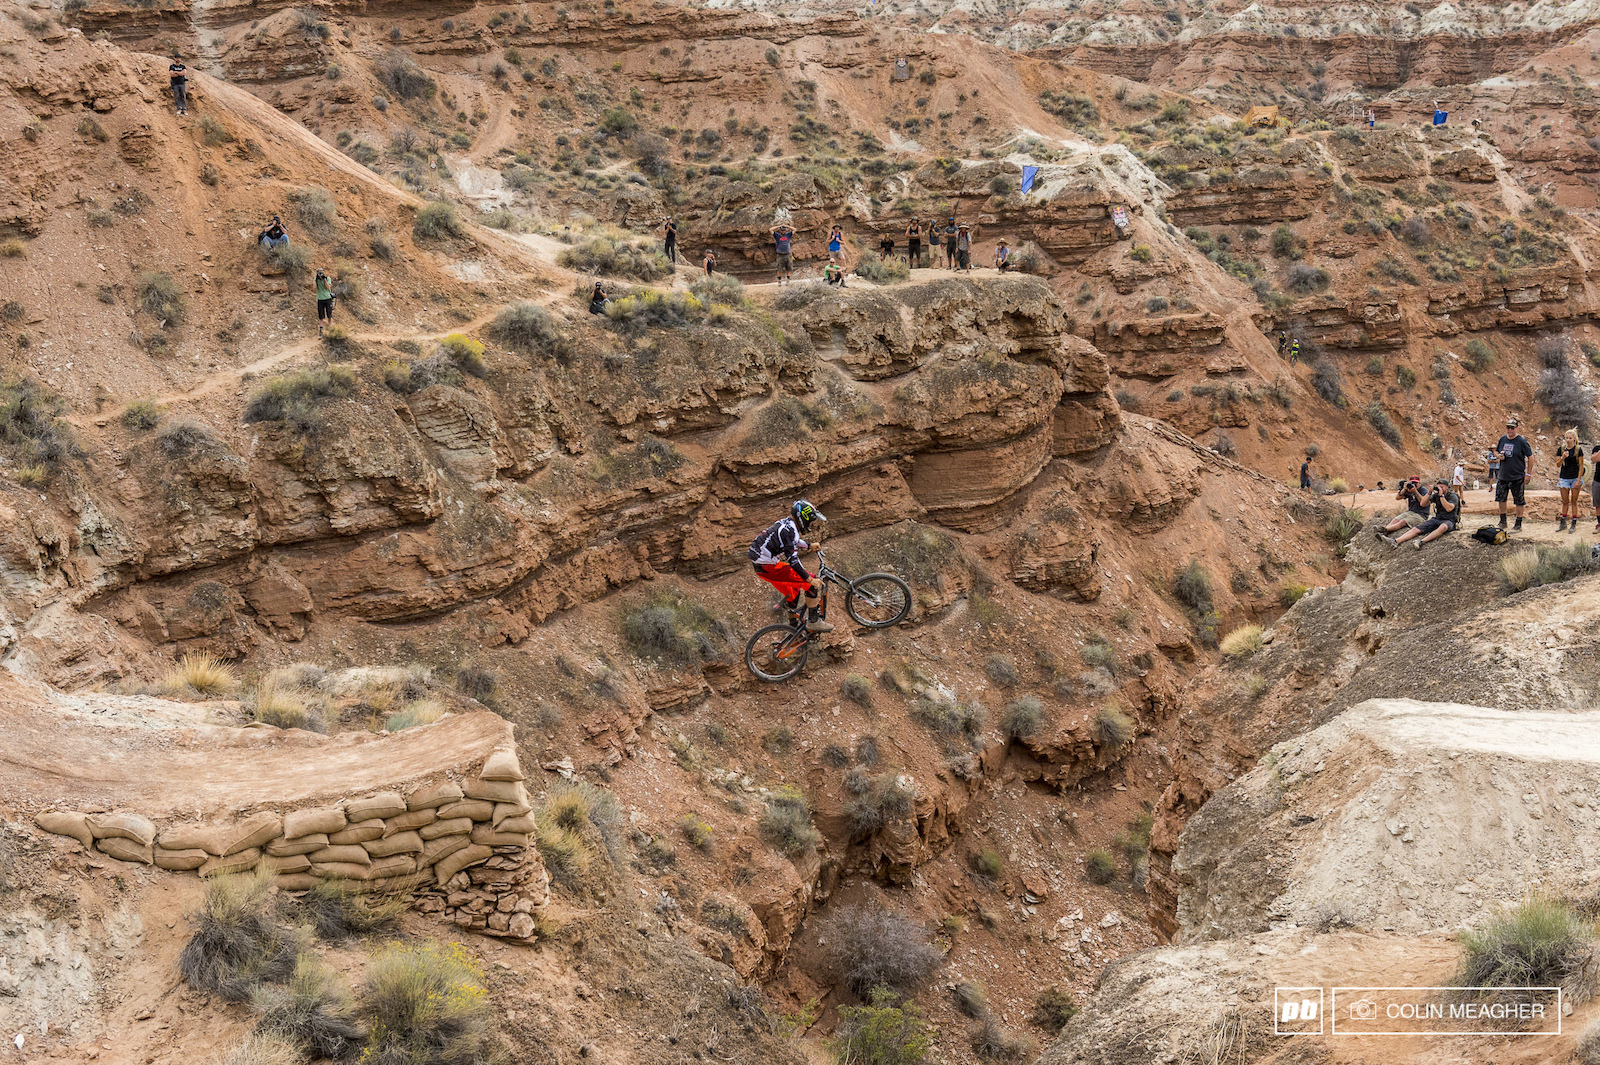 Guinea pig time on the mini canyon gap for Cam Zink. On a subsequent run in Zink slipped a pedal and fell into the canyon. Shaken but not badly injured the YT rider took it easy for the rest of the day.